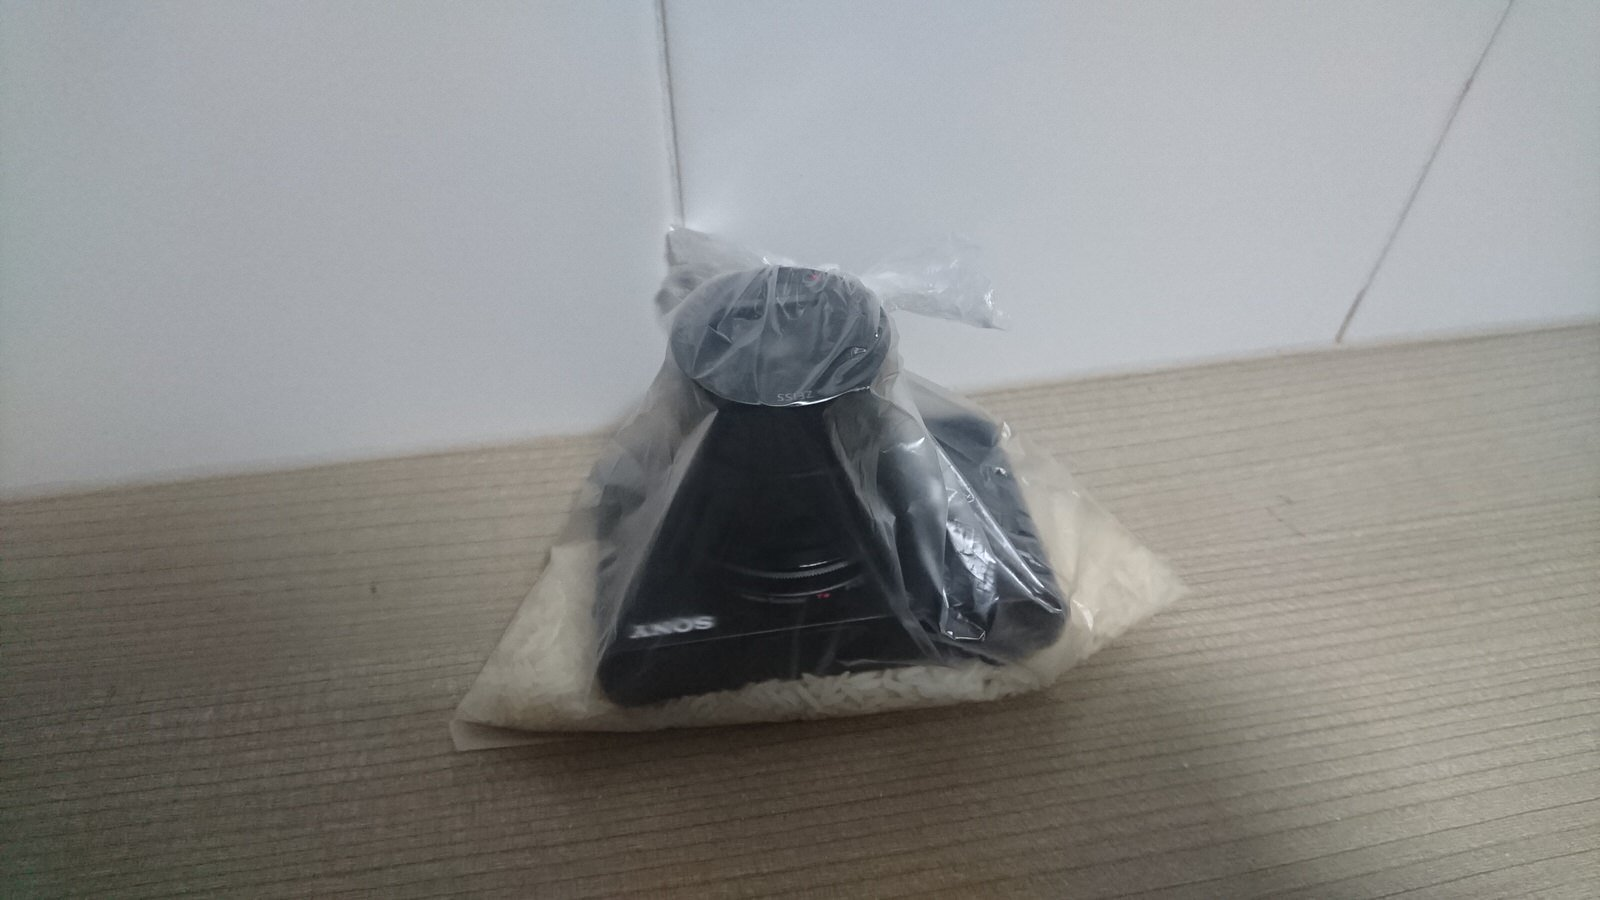 Camera In Sealed Bag With Rice